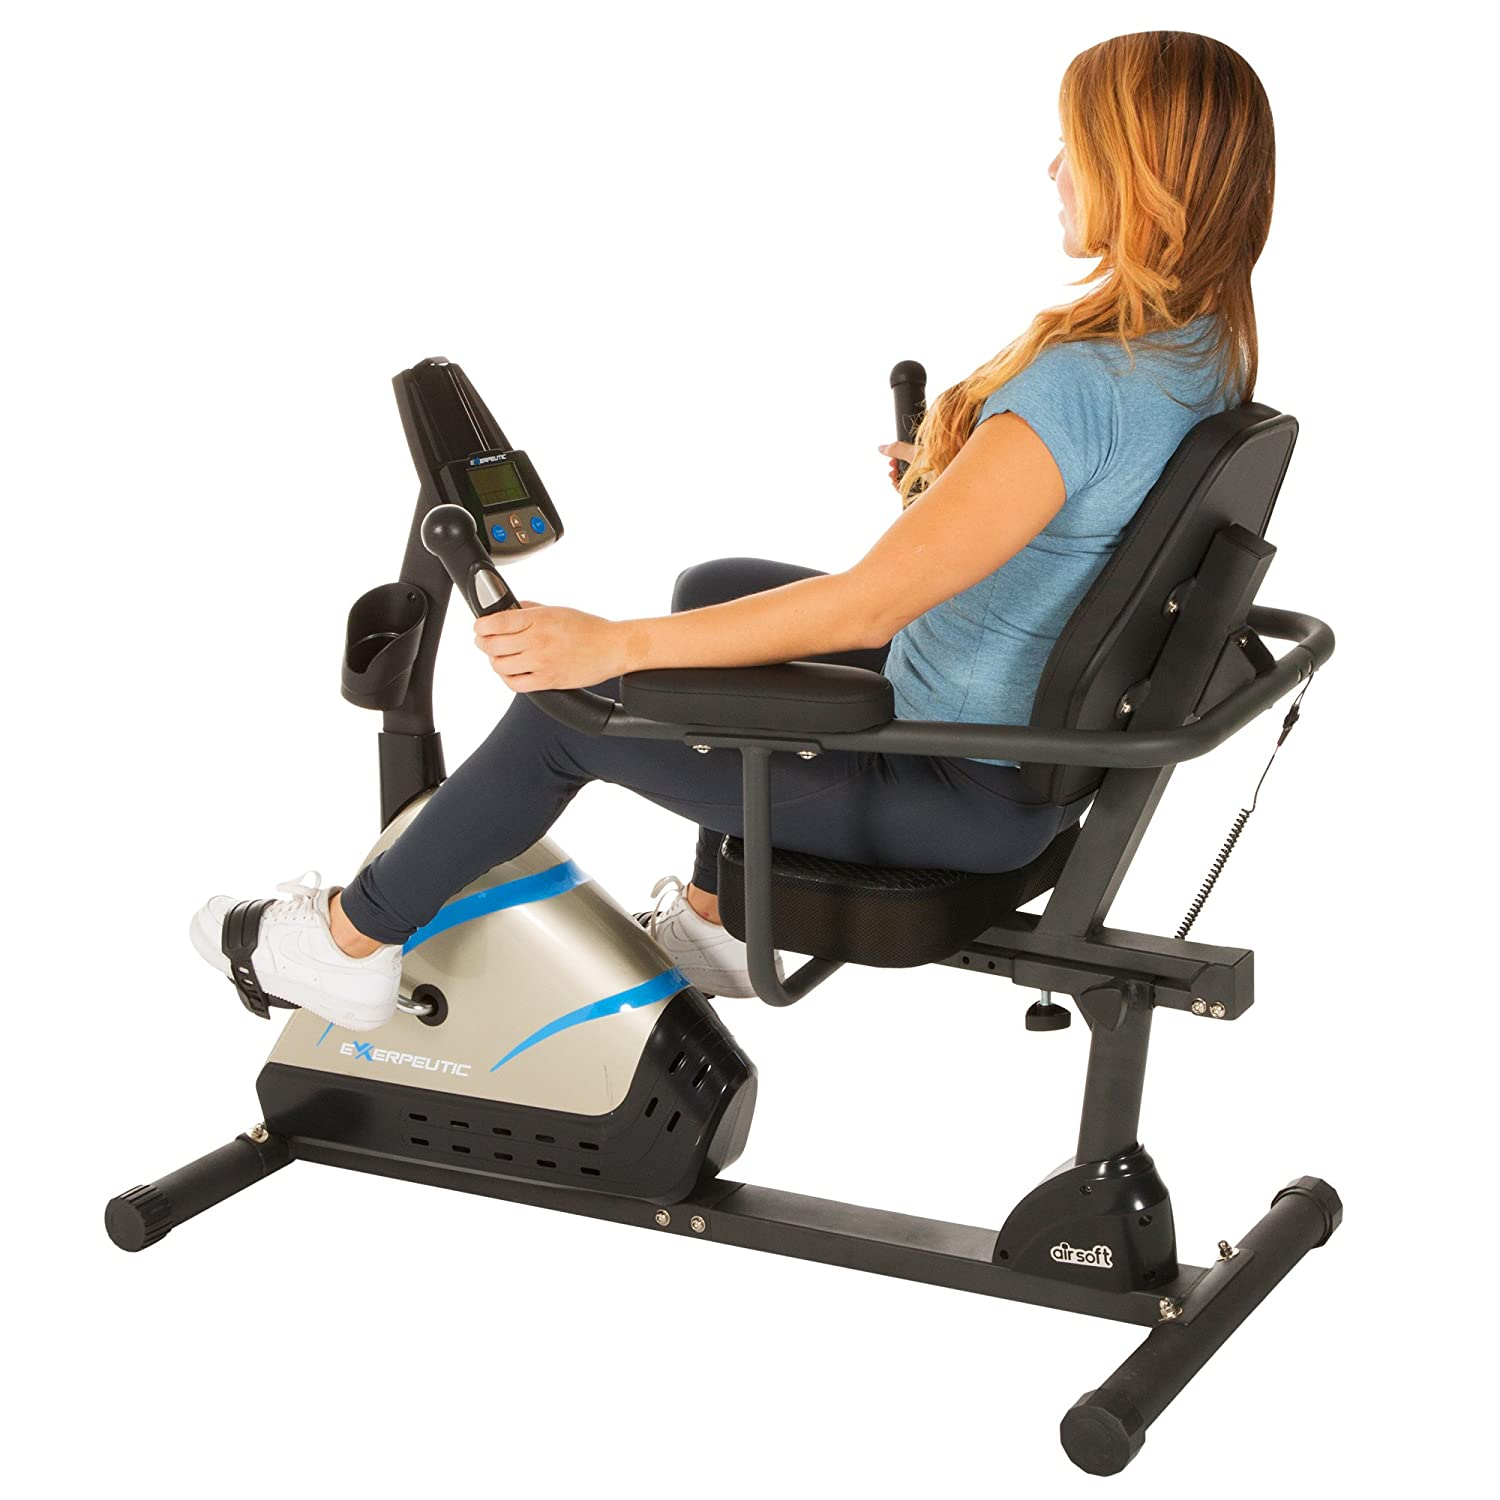 Exerpeutic 2000 High Capacity Programmable Magnetic Recumbent Bike review in 2016